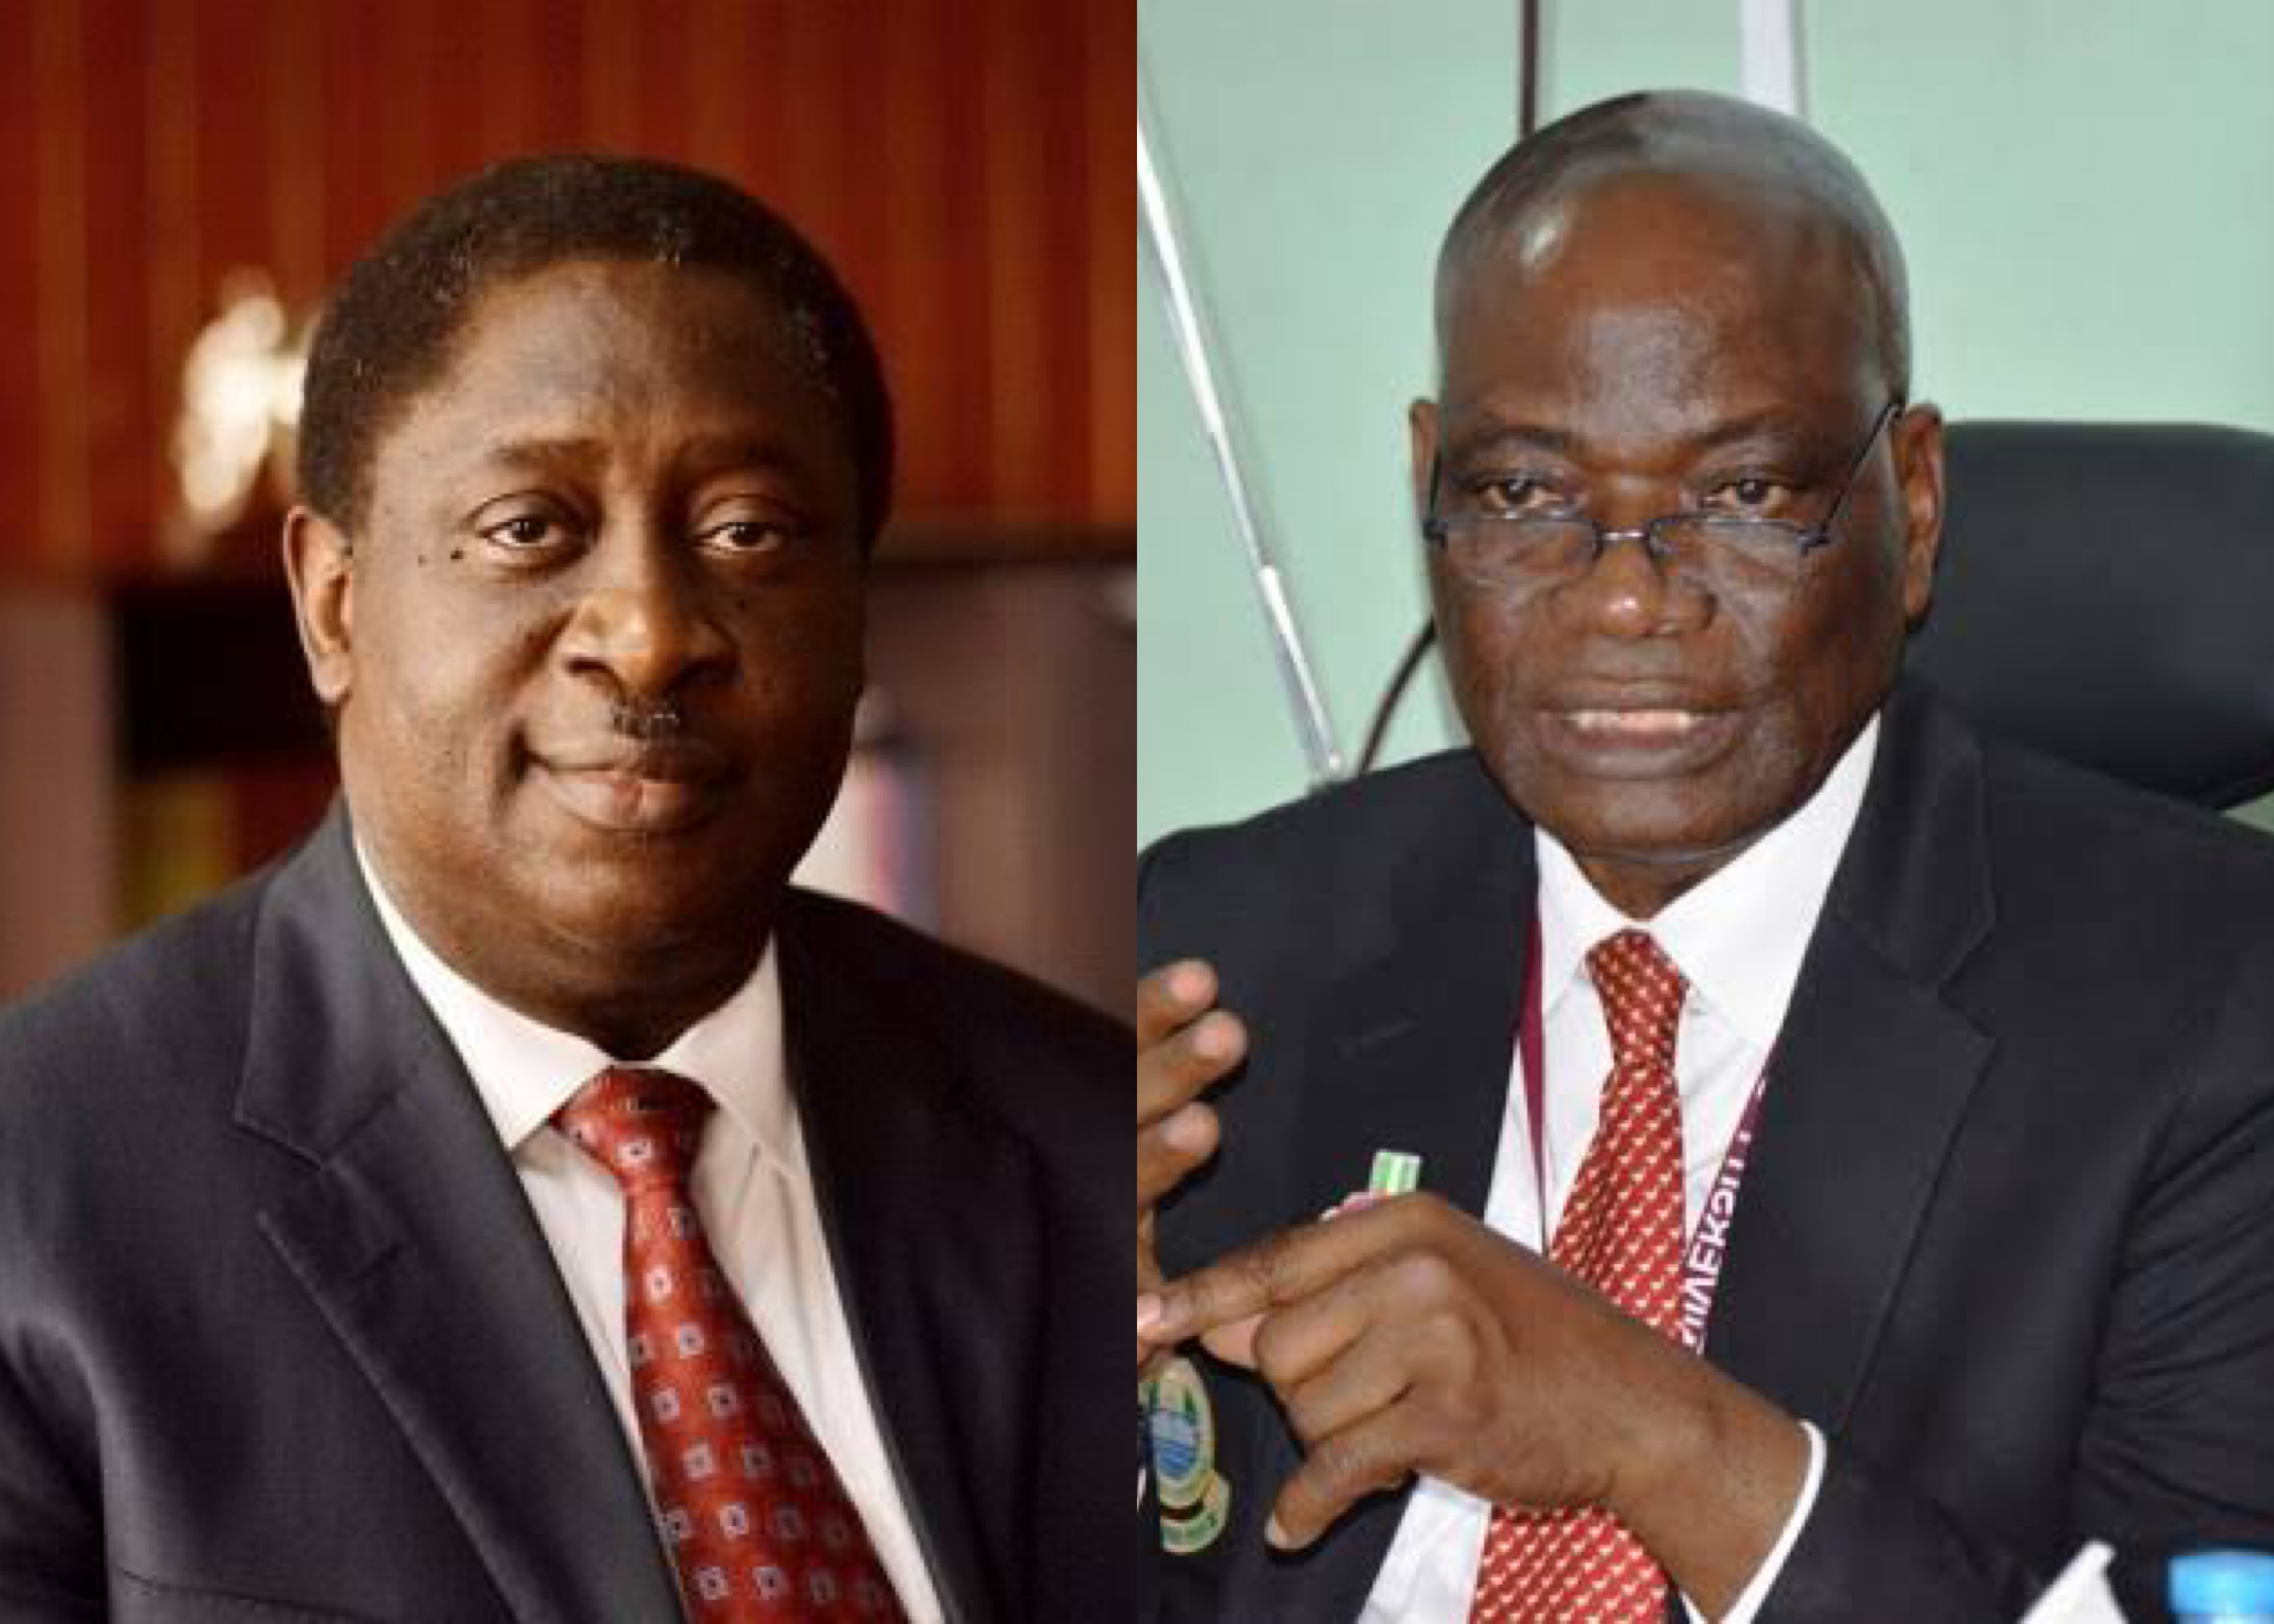 L-R: Pro-Chancellor of the University of Lagos, Dr. Wale Babalakin and UNILAG vice chancellor Prof. Oluwatoyin Ogundipe